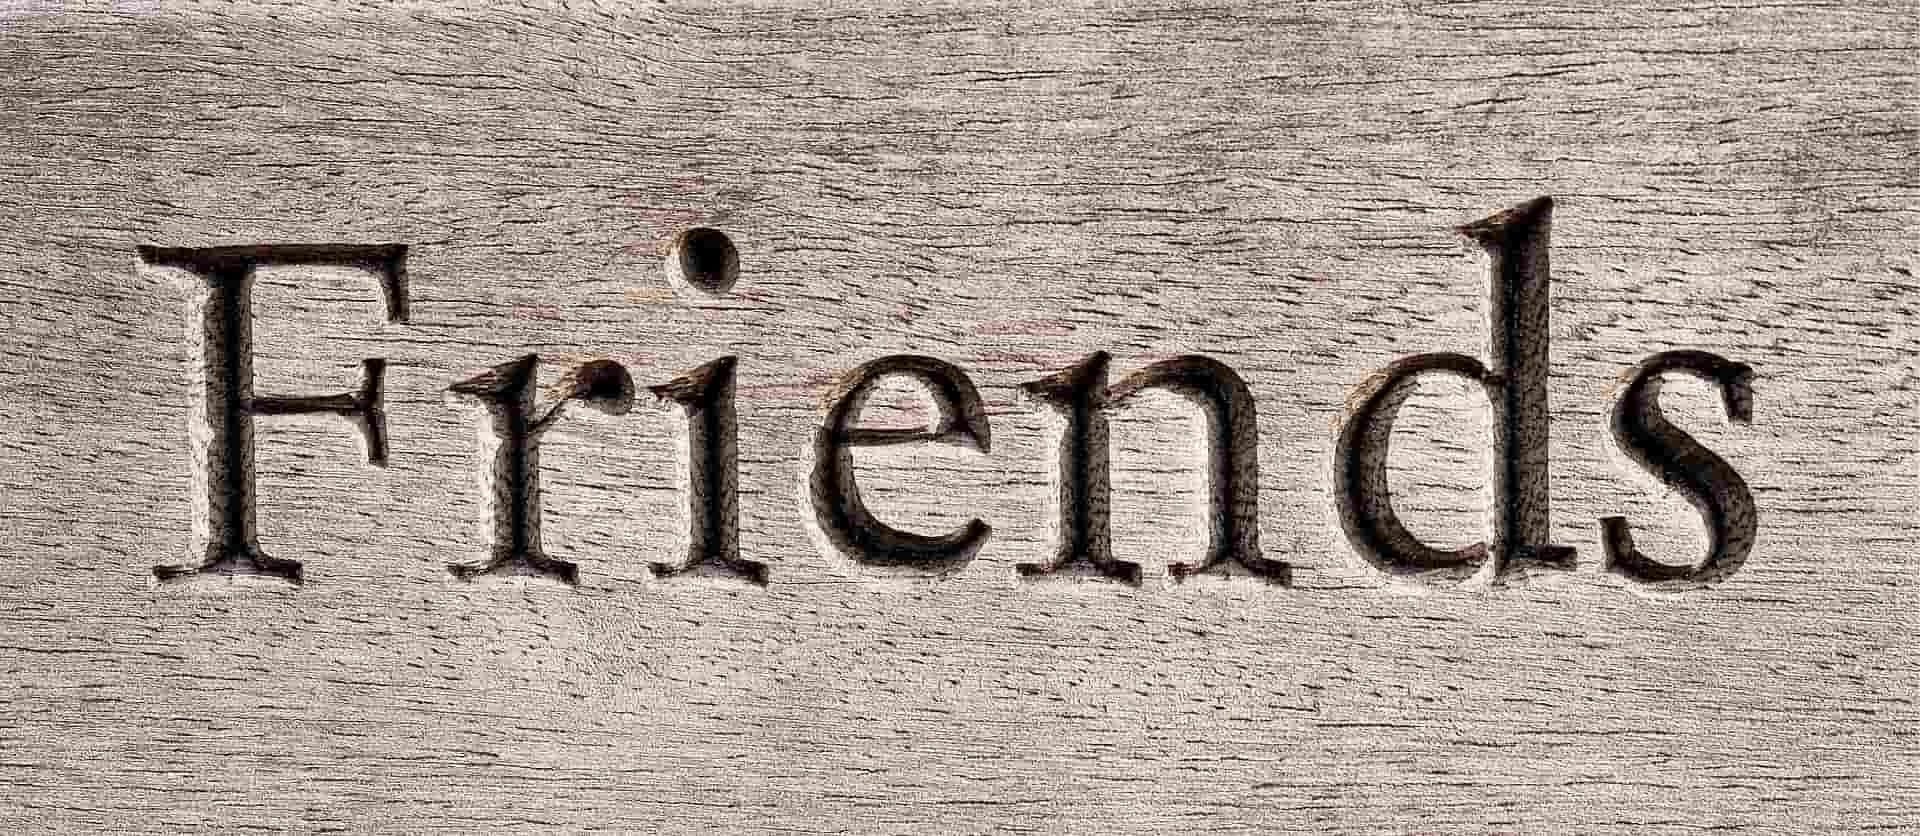 Become That Good Friend on Social Media